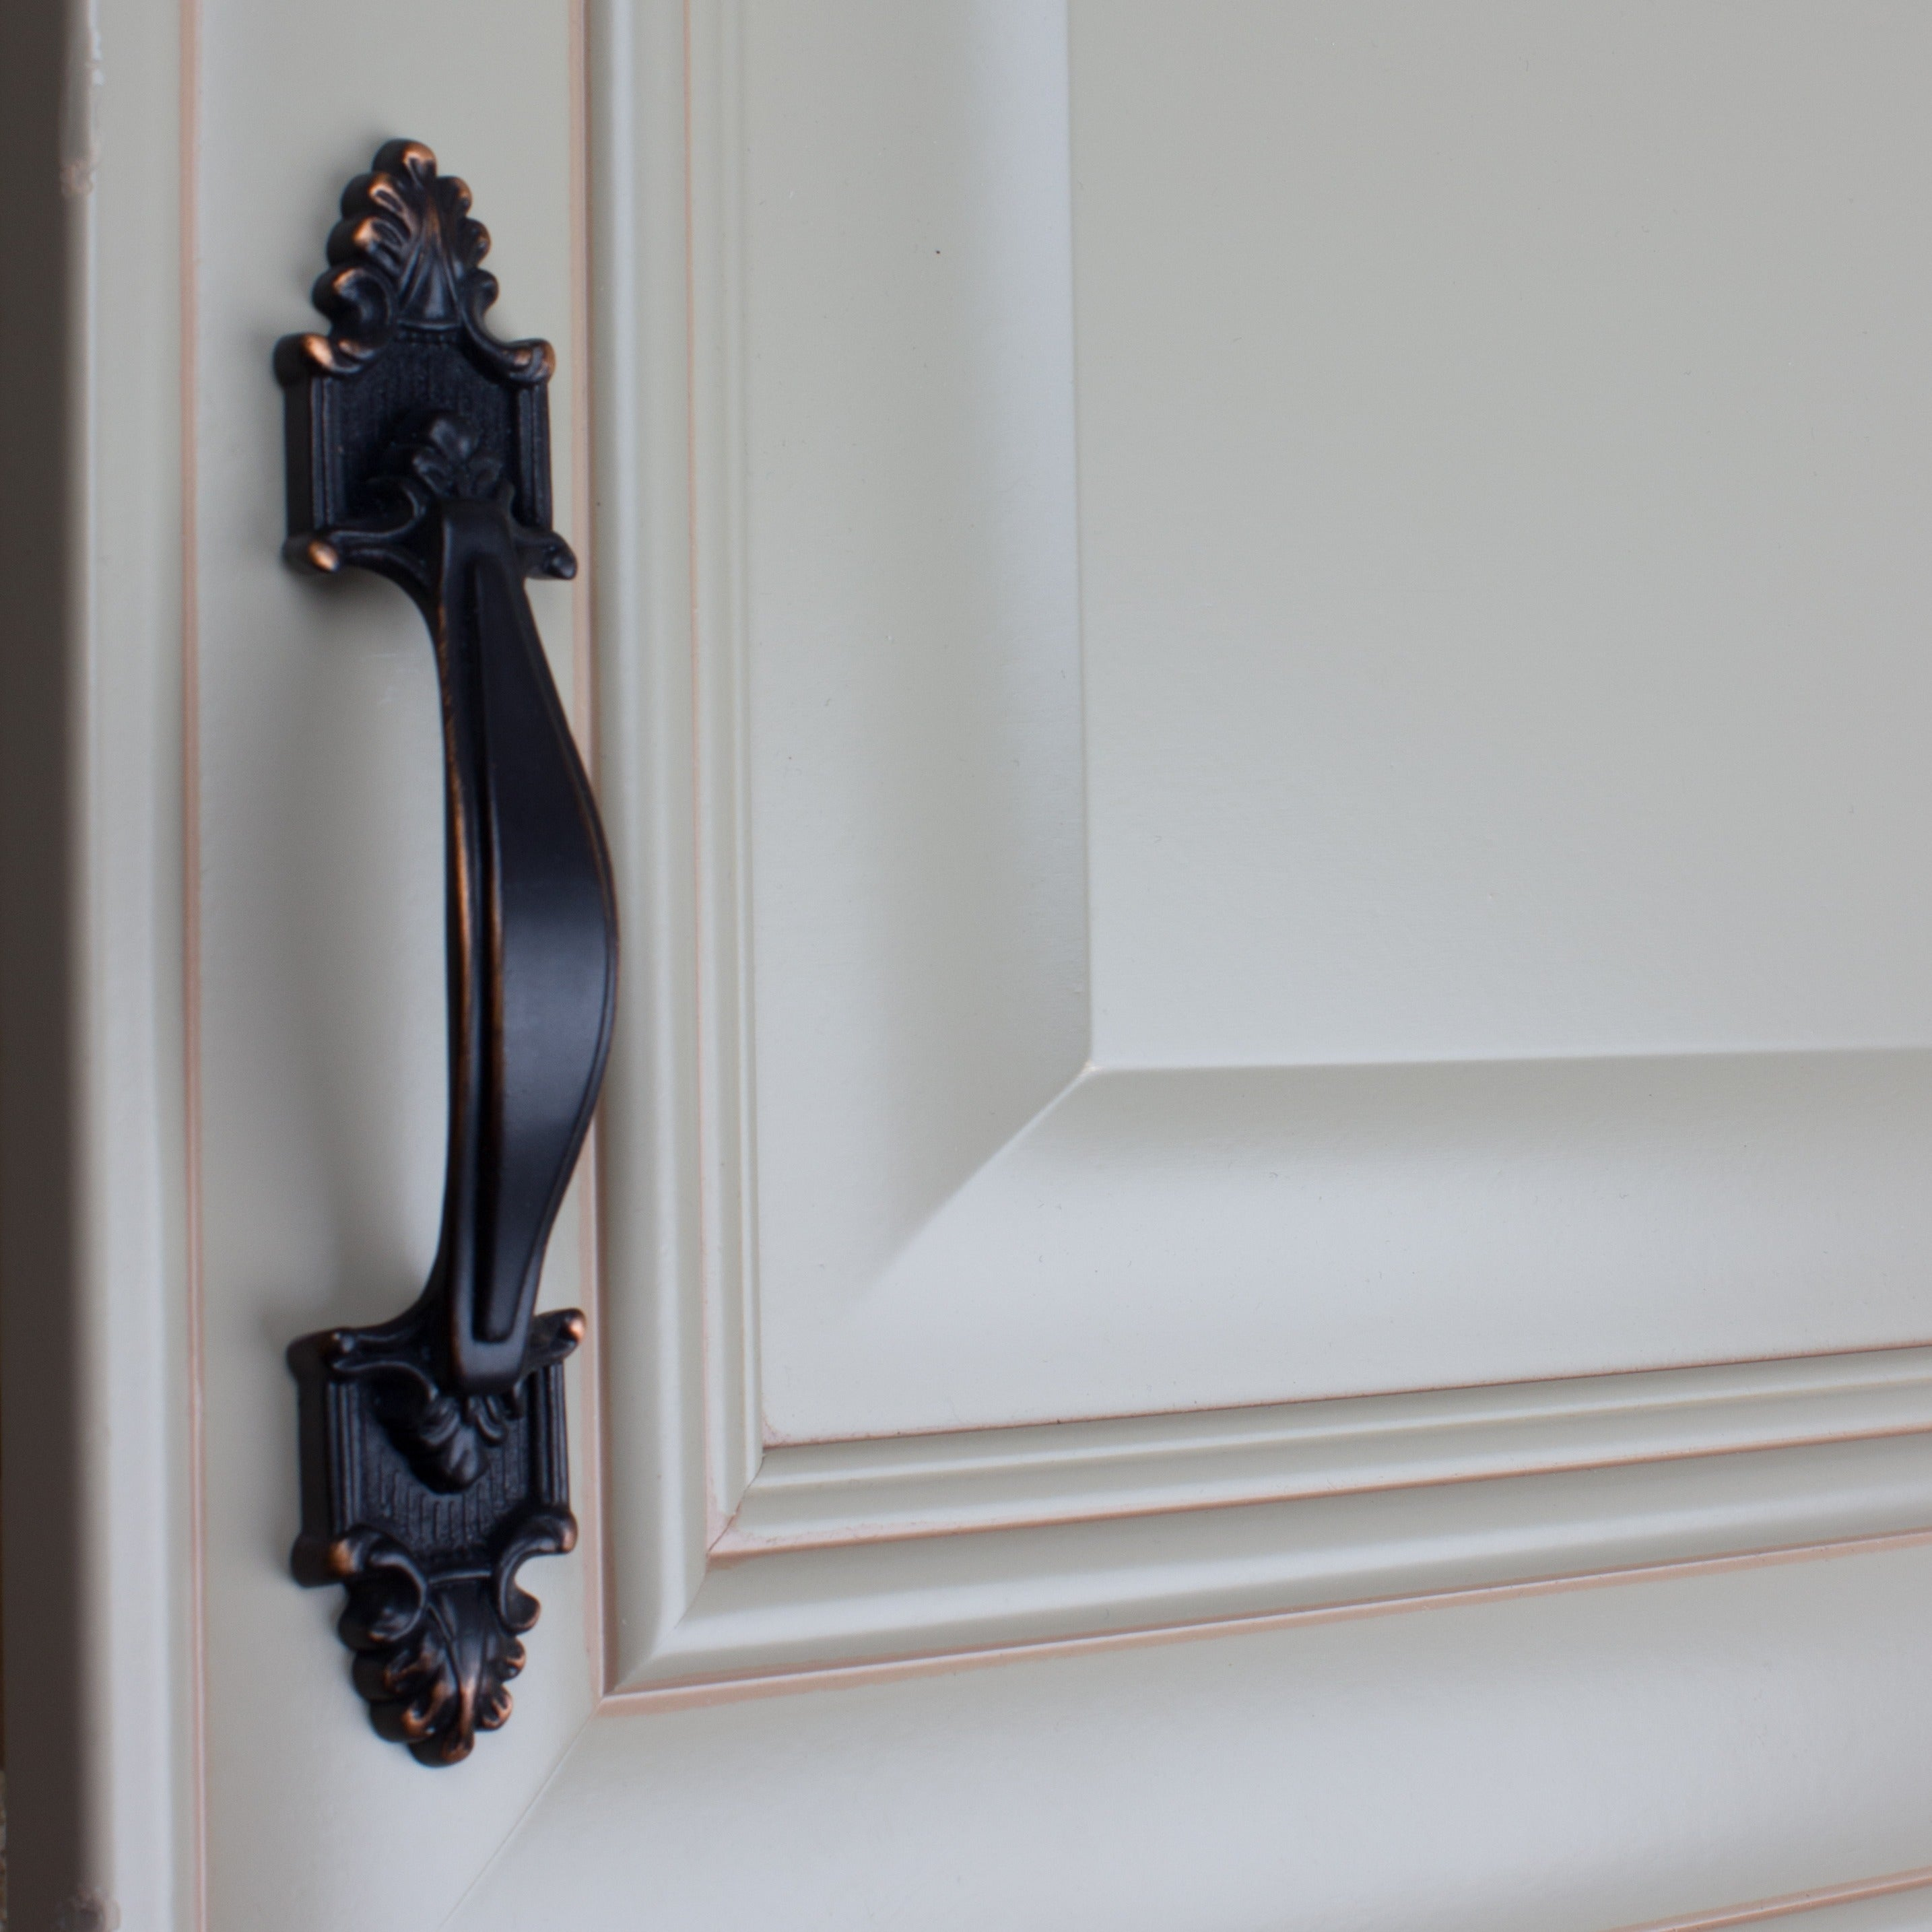 GlideRite 3.5 Inch Oil Rubbed Bronze Old World Cabinet Pulls (Pack Of 10)    Free Shipping On Orders Over $45   Overstock.com   16305212